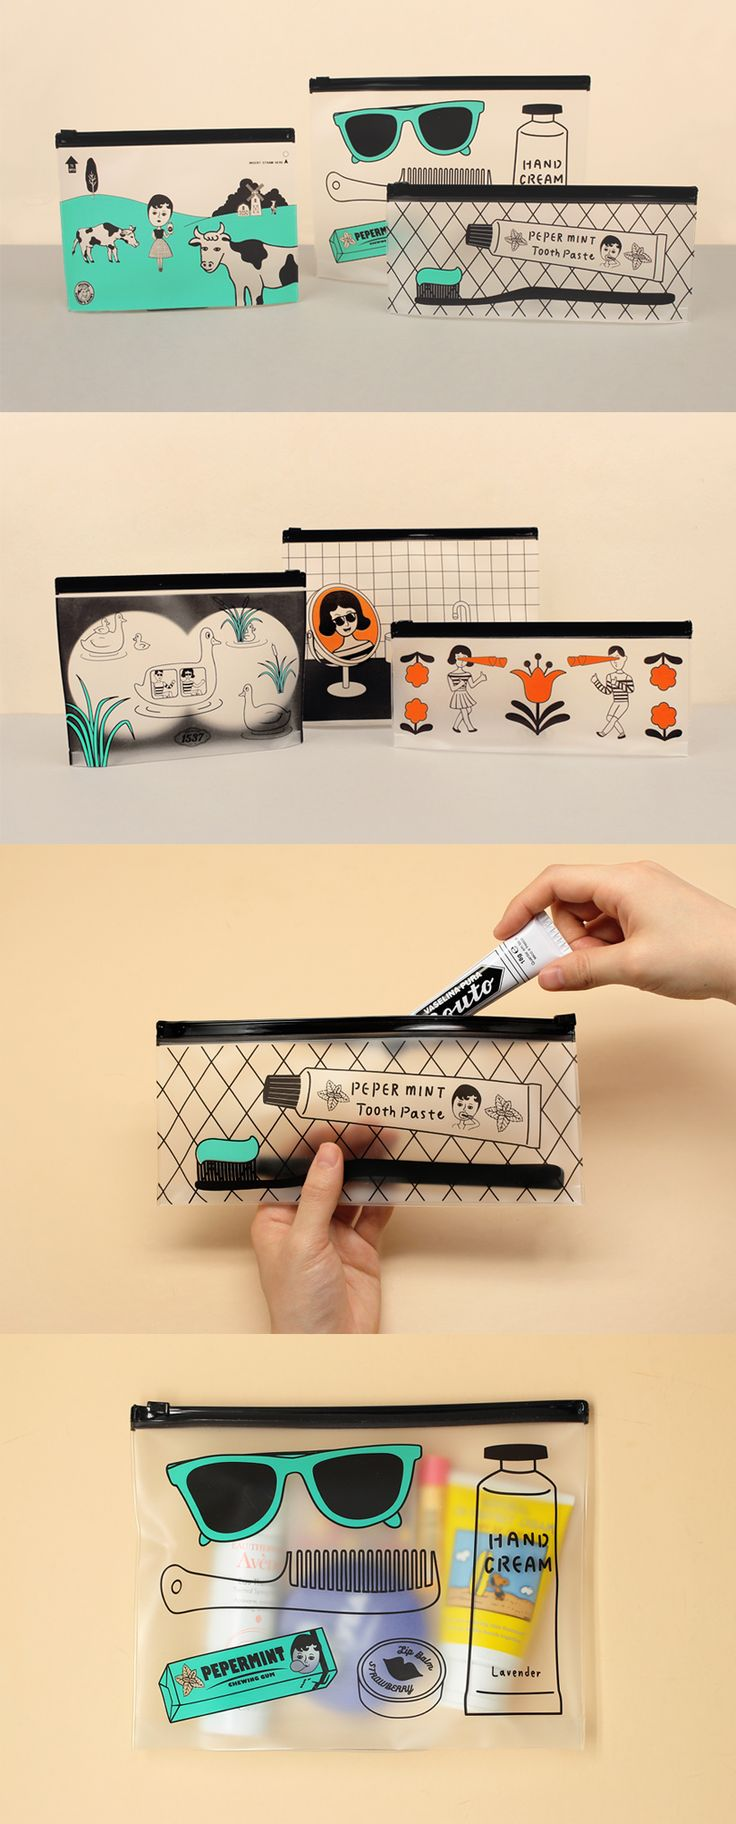 Ooh La La~~! Check out these super cute and quirky translucent pouches for all your travel needs!